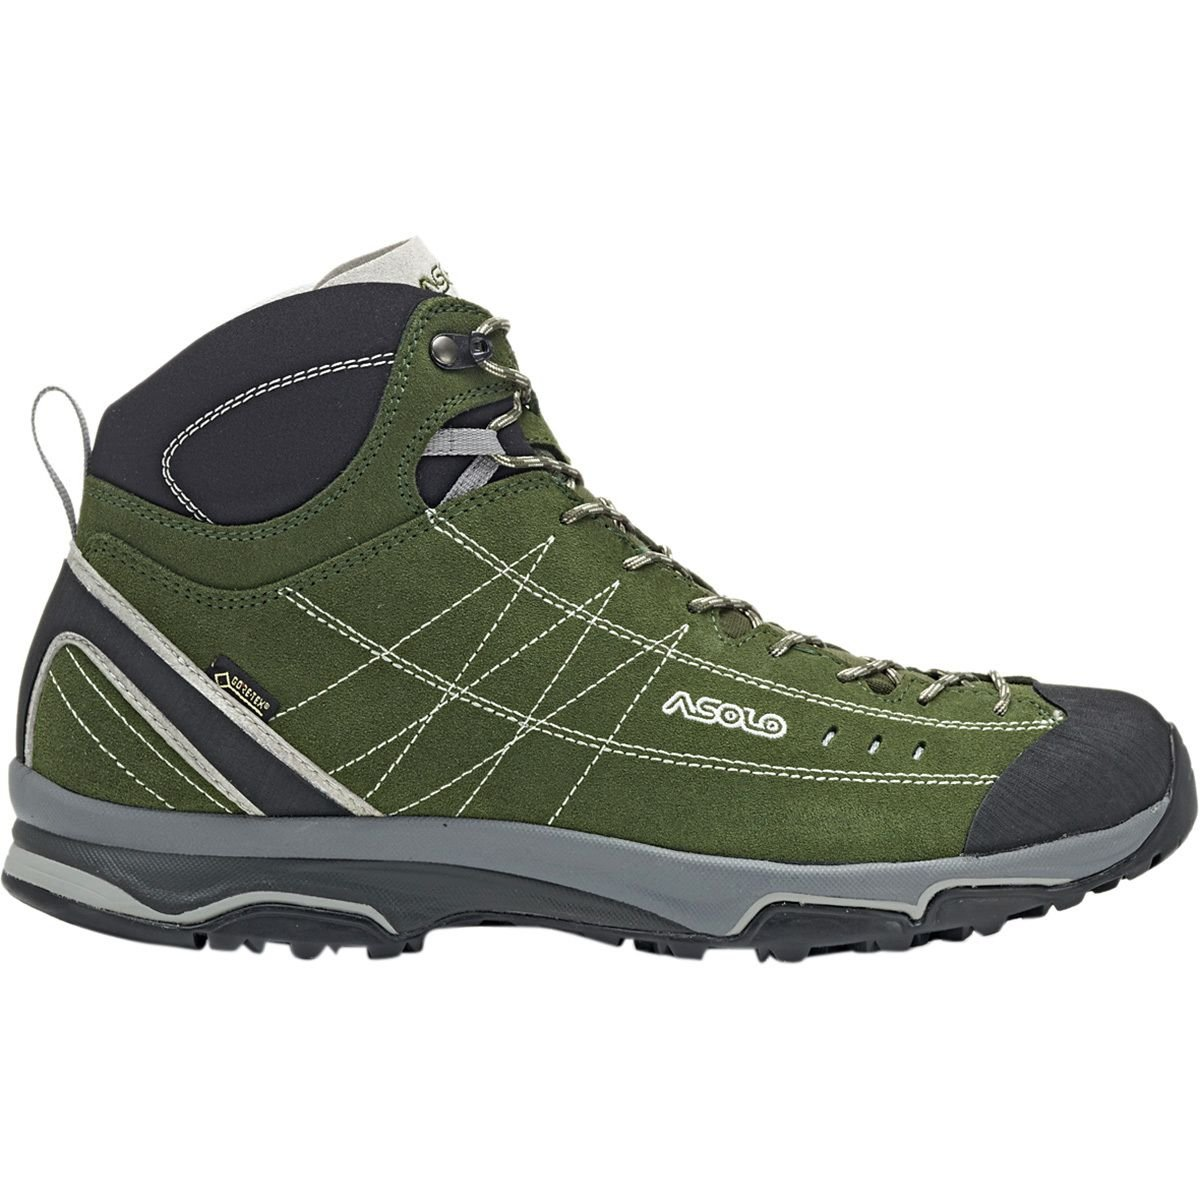 Asolo A40028 Men/'s Nucleon Mid GV Rifle//Green Silver Hiking Walking Shoes Boots